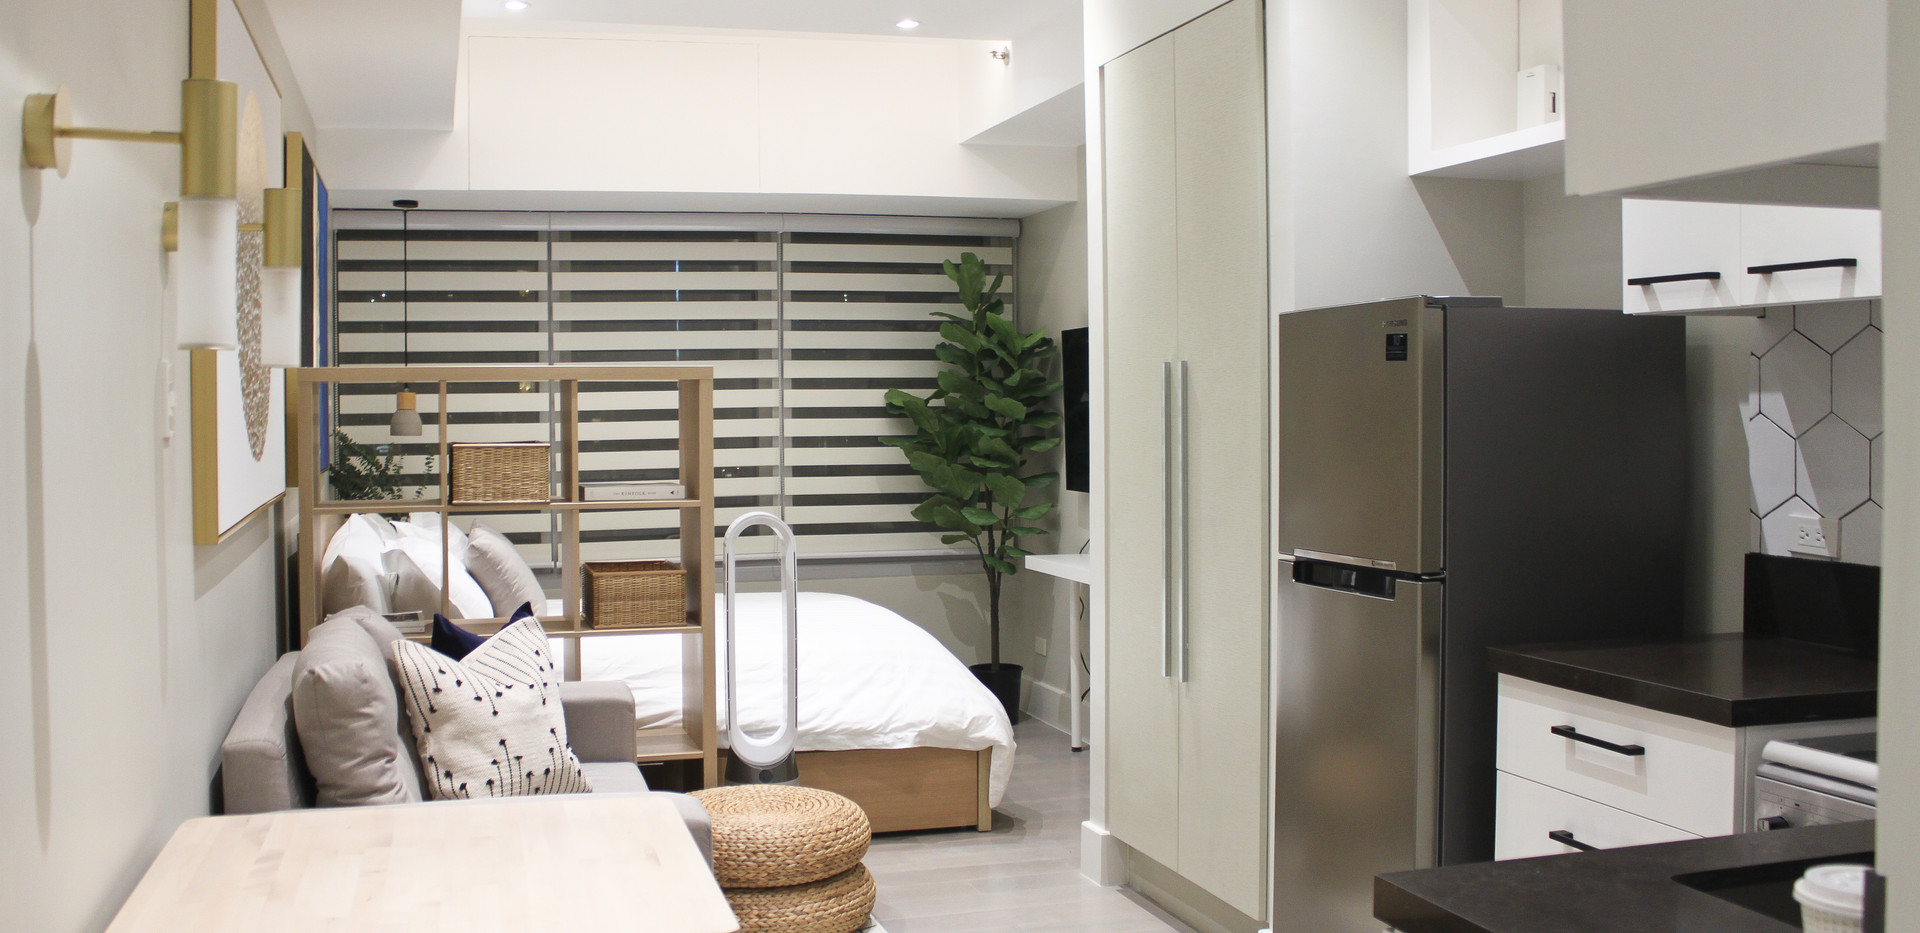 Interiors by Claudine